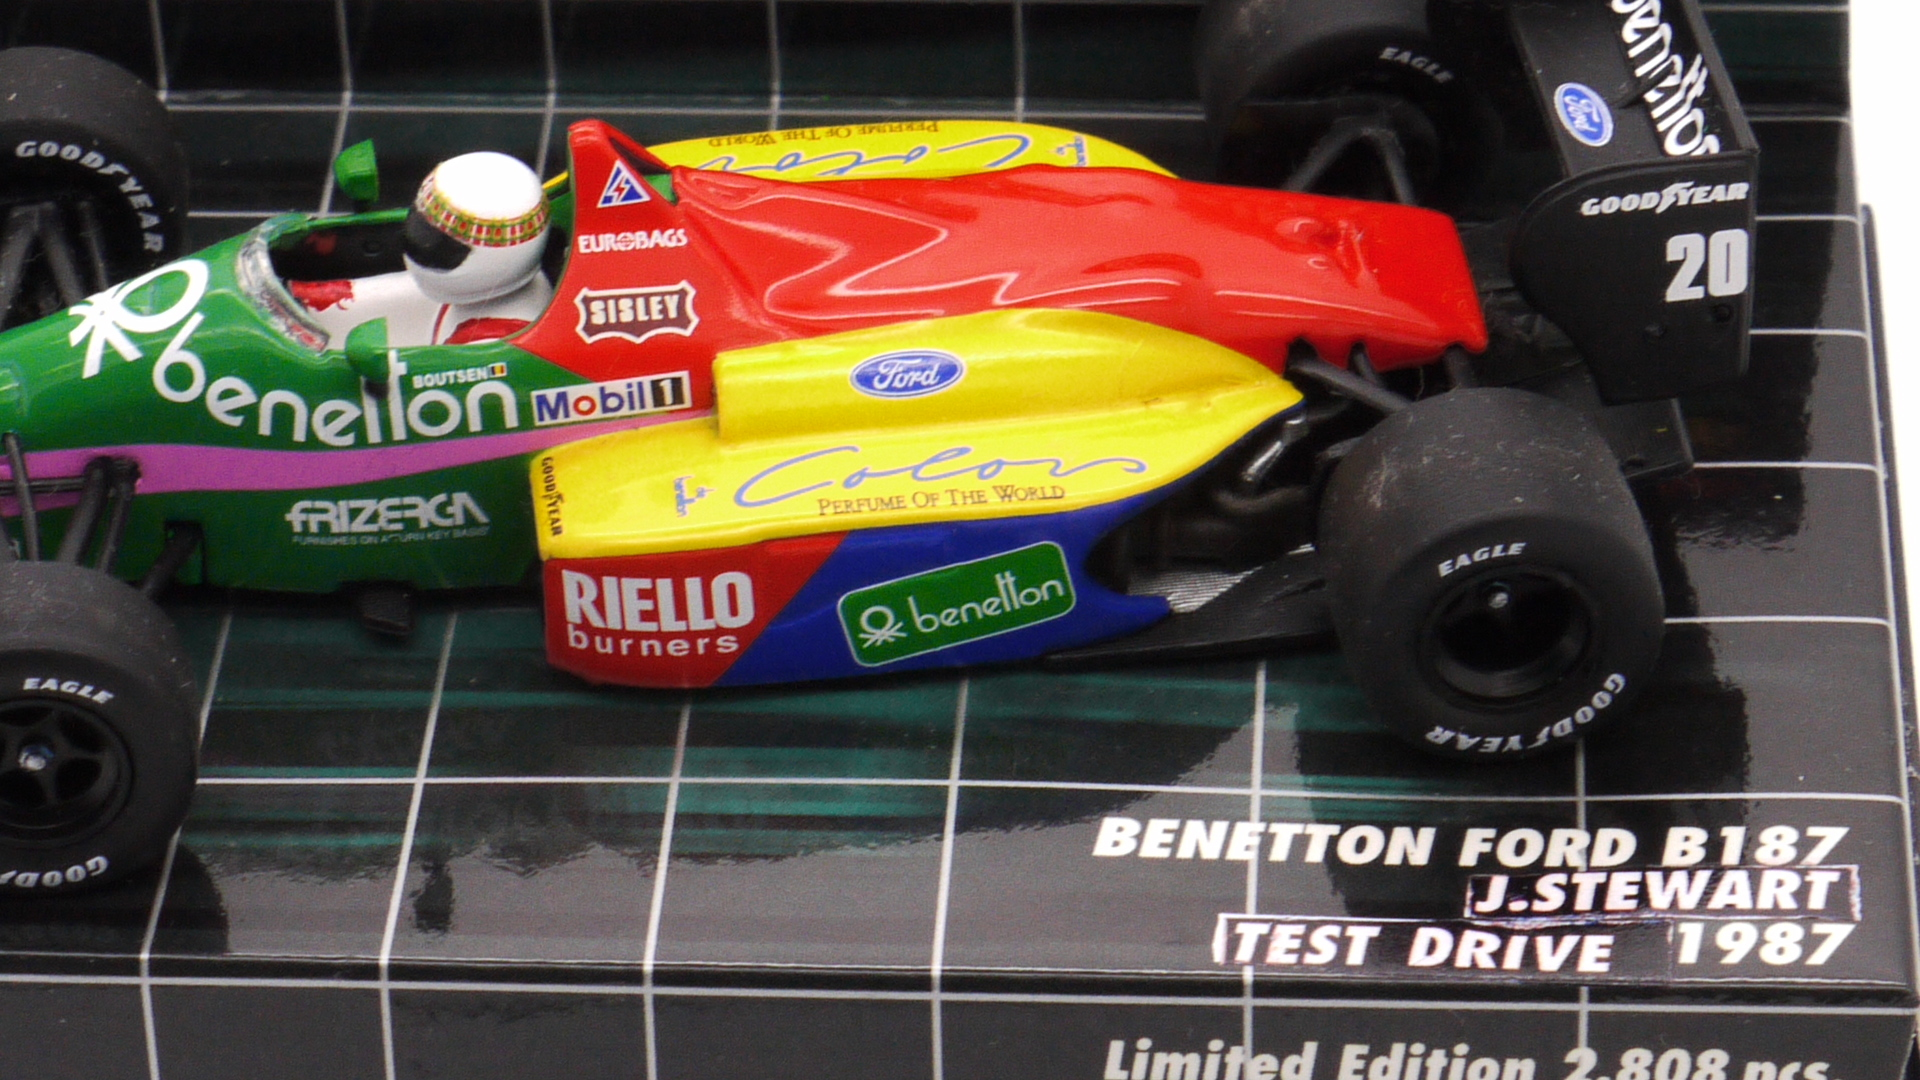 Minichamps Benetton B187 J.Stewart First T.V show test car 1/43 scale